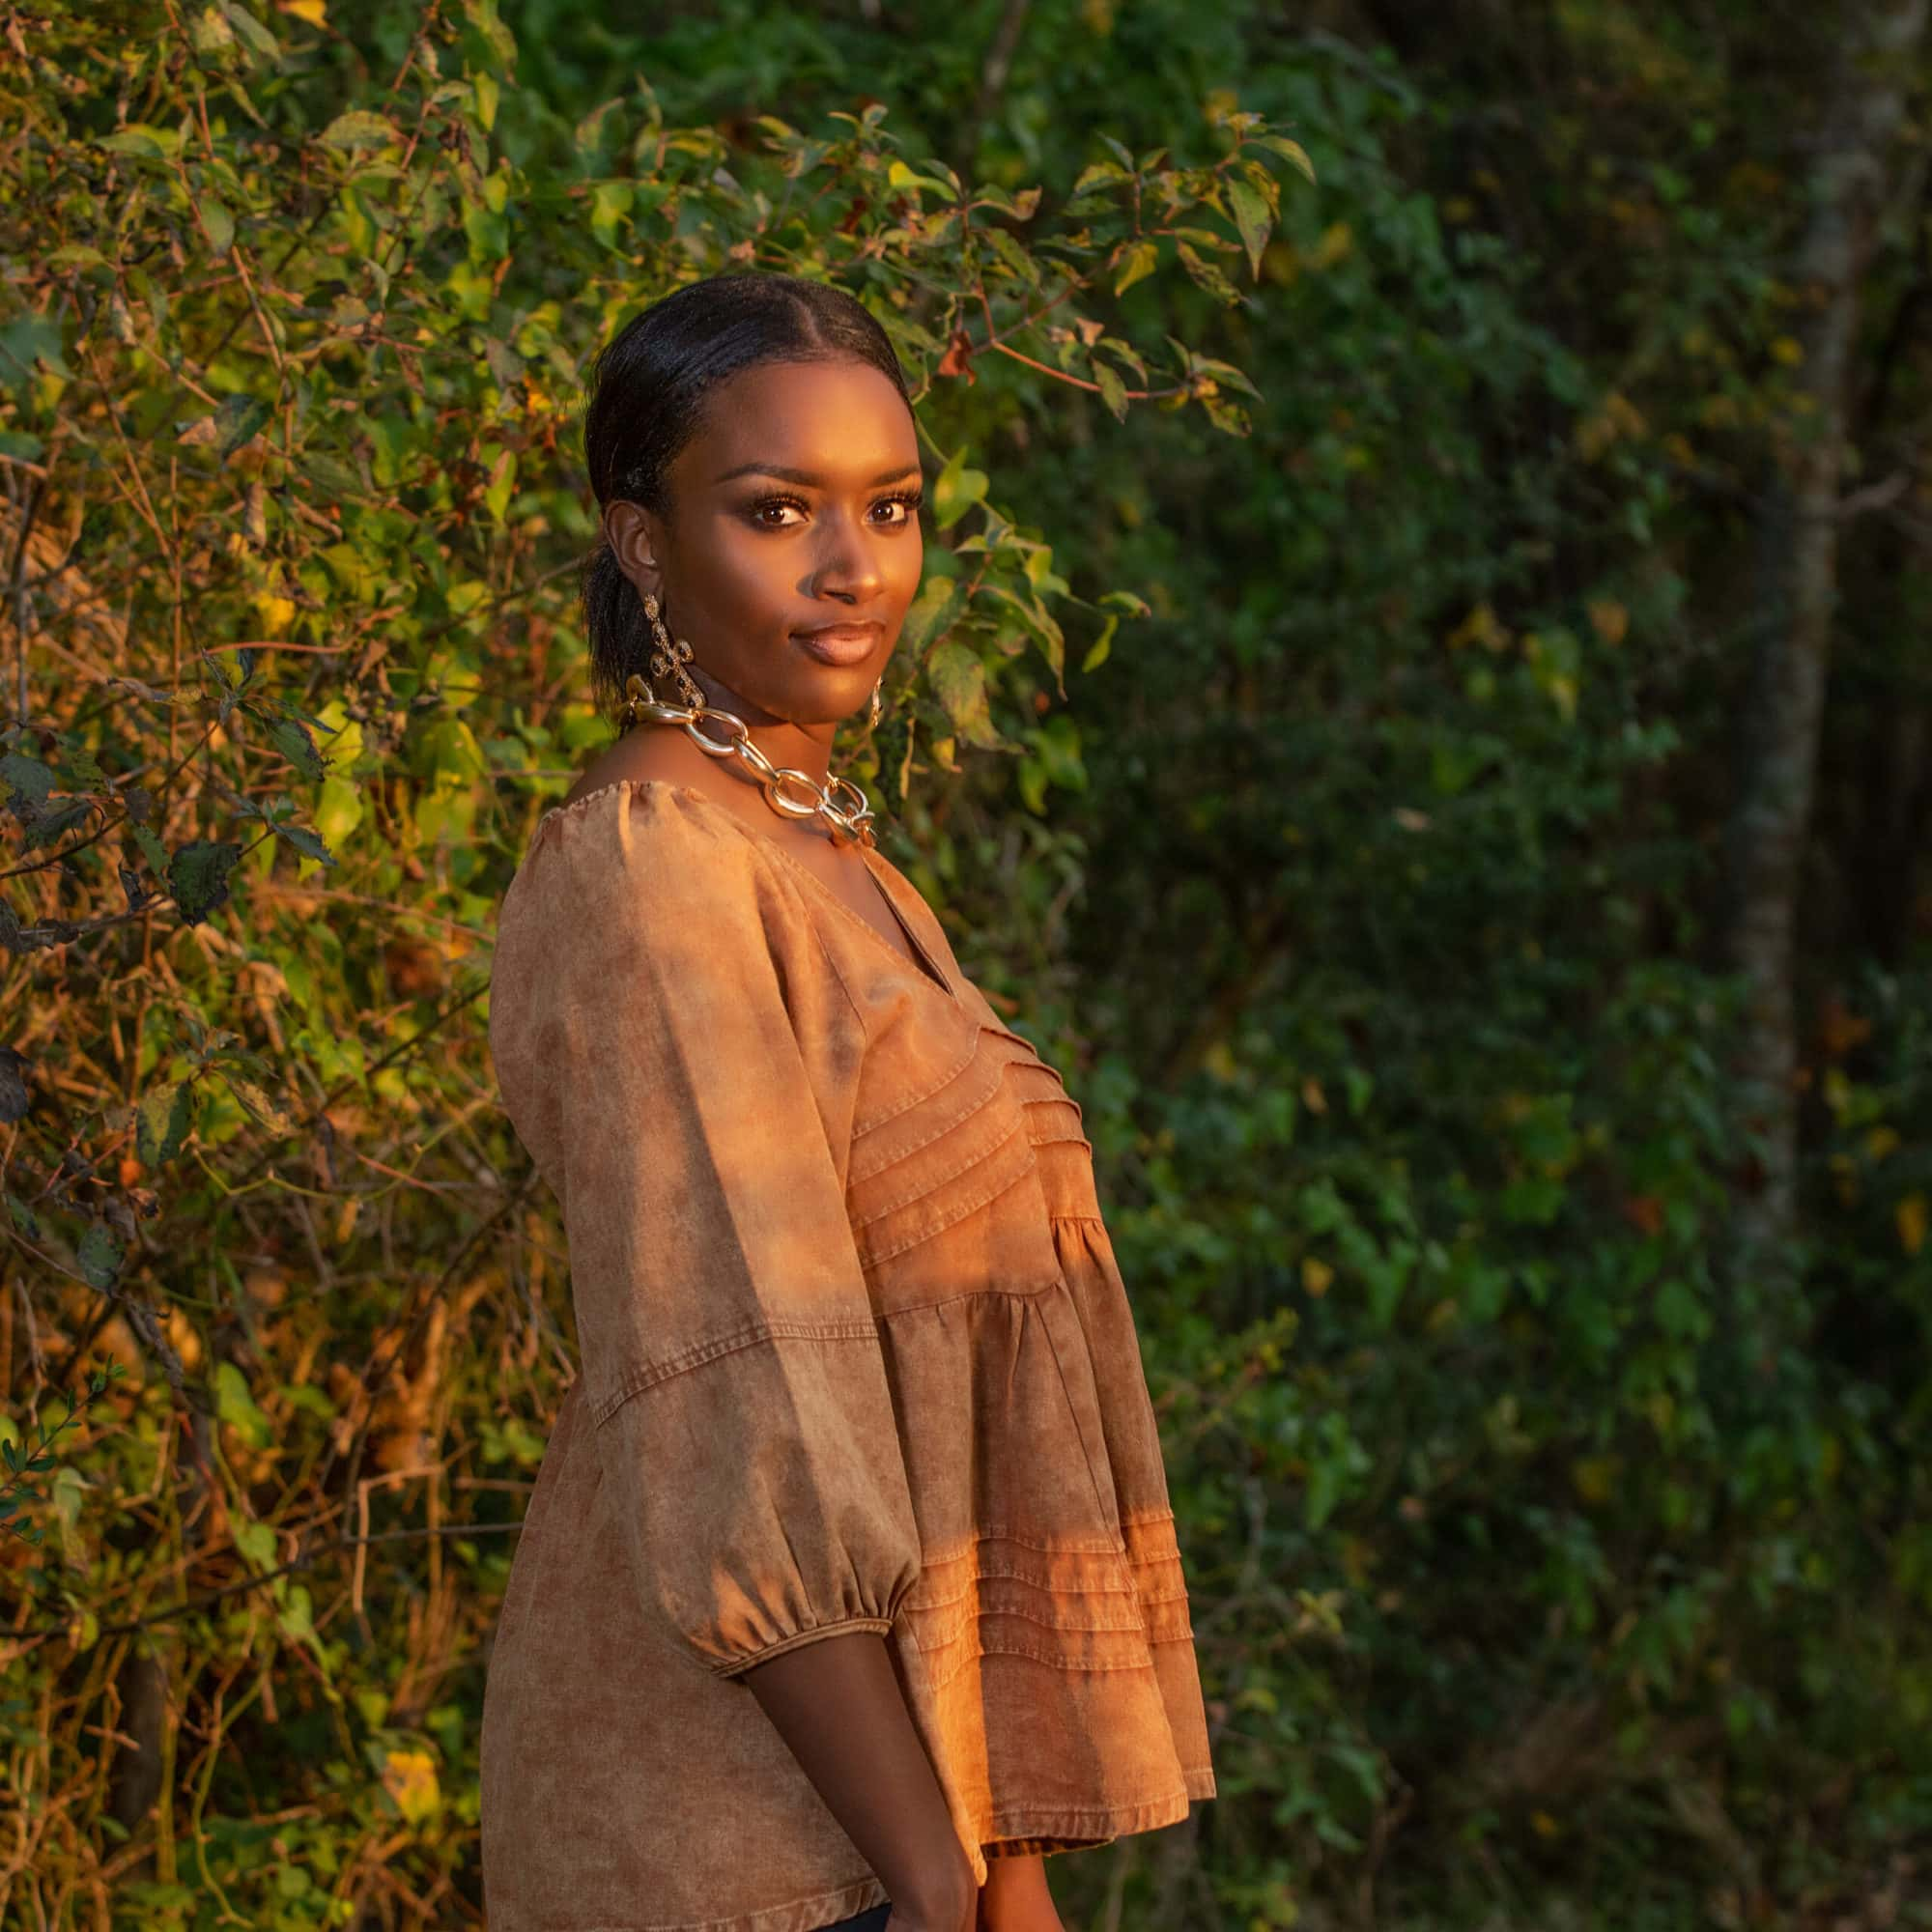 Amiracle D85 2730 Edit scaled - Urban Eve